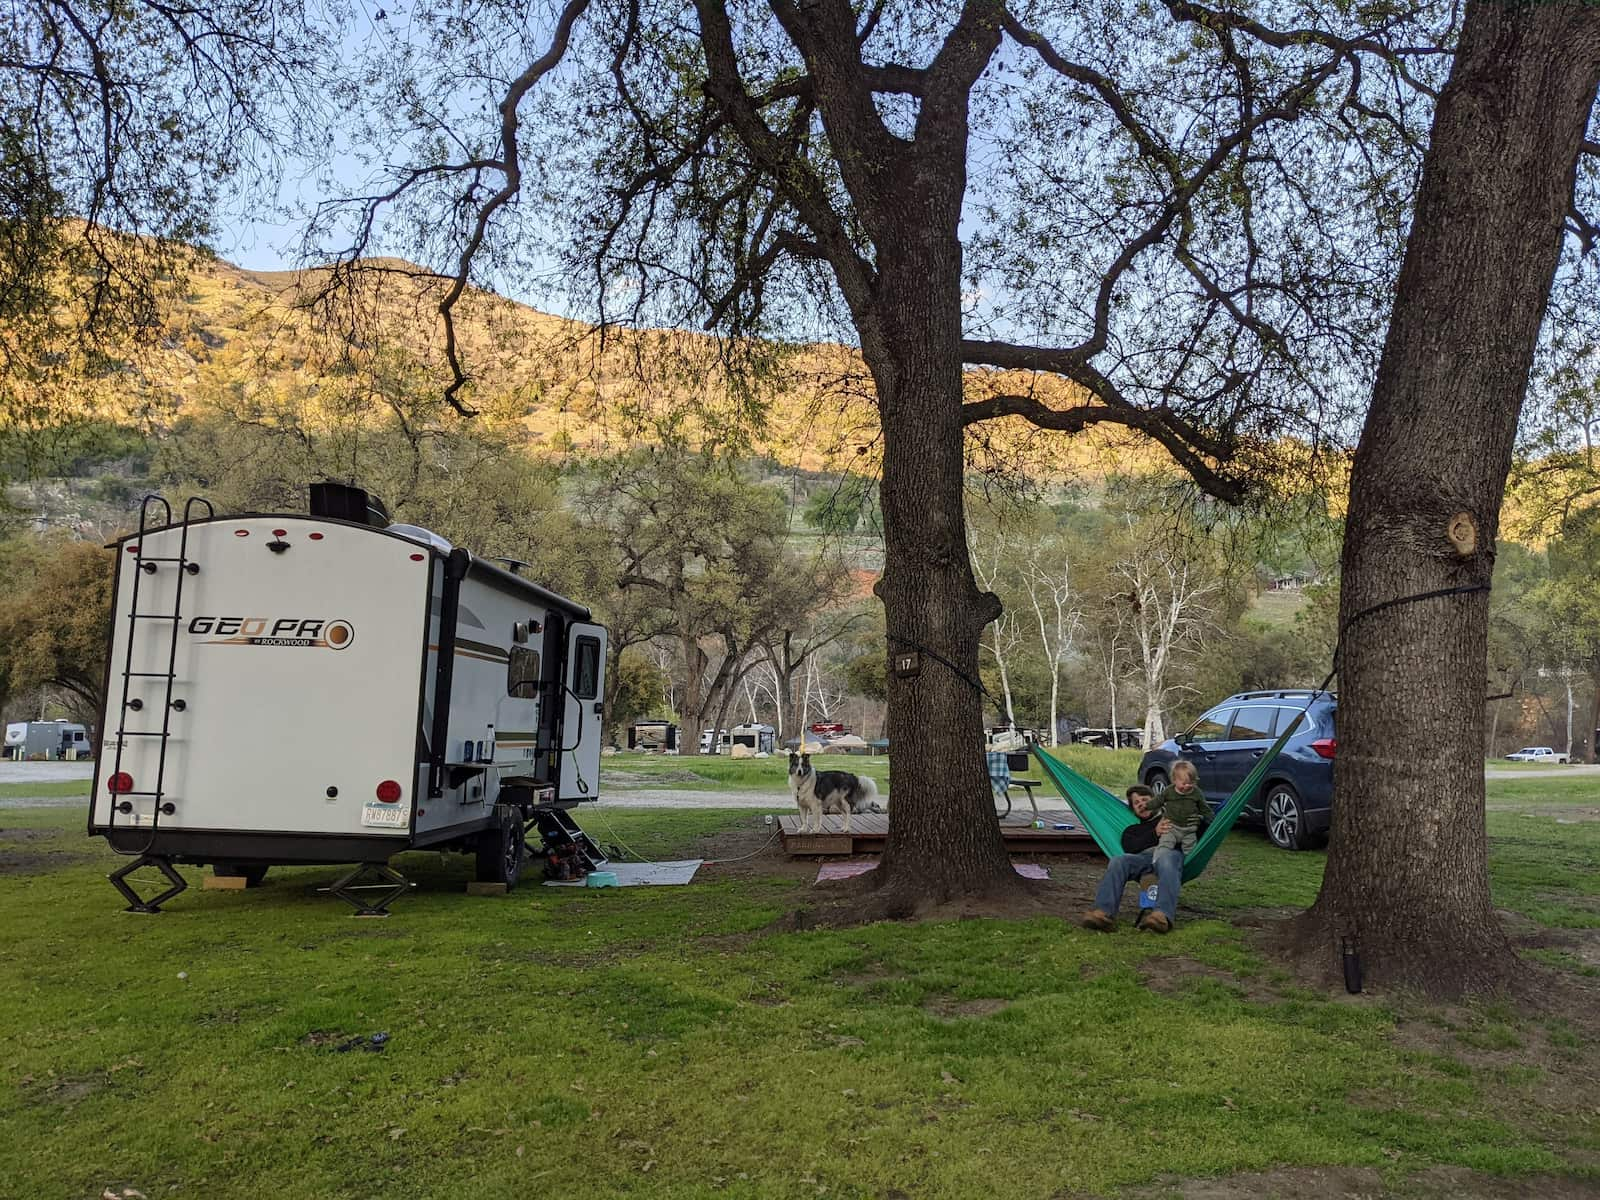 RV parked below mountains beside a tree with person hanging out in a hammock.